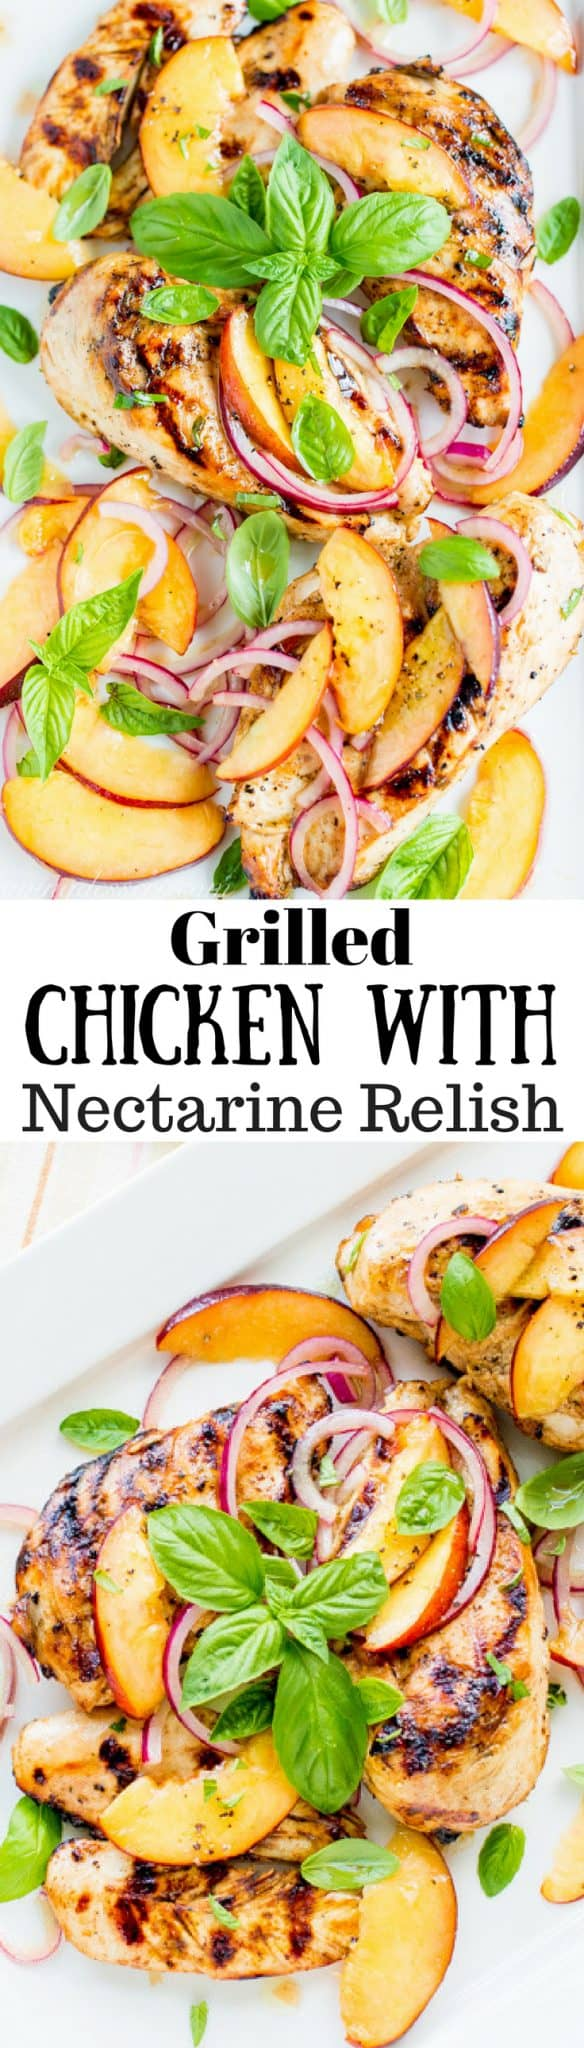 Grilled Chicken with Nectarine Relish ~ Lightly marinated, grilled chicken breasts are topped with a relish made with nectarines, red onion, fresh basil. Delightfully delicious! www.savingdessert.com